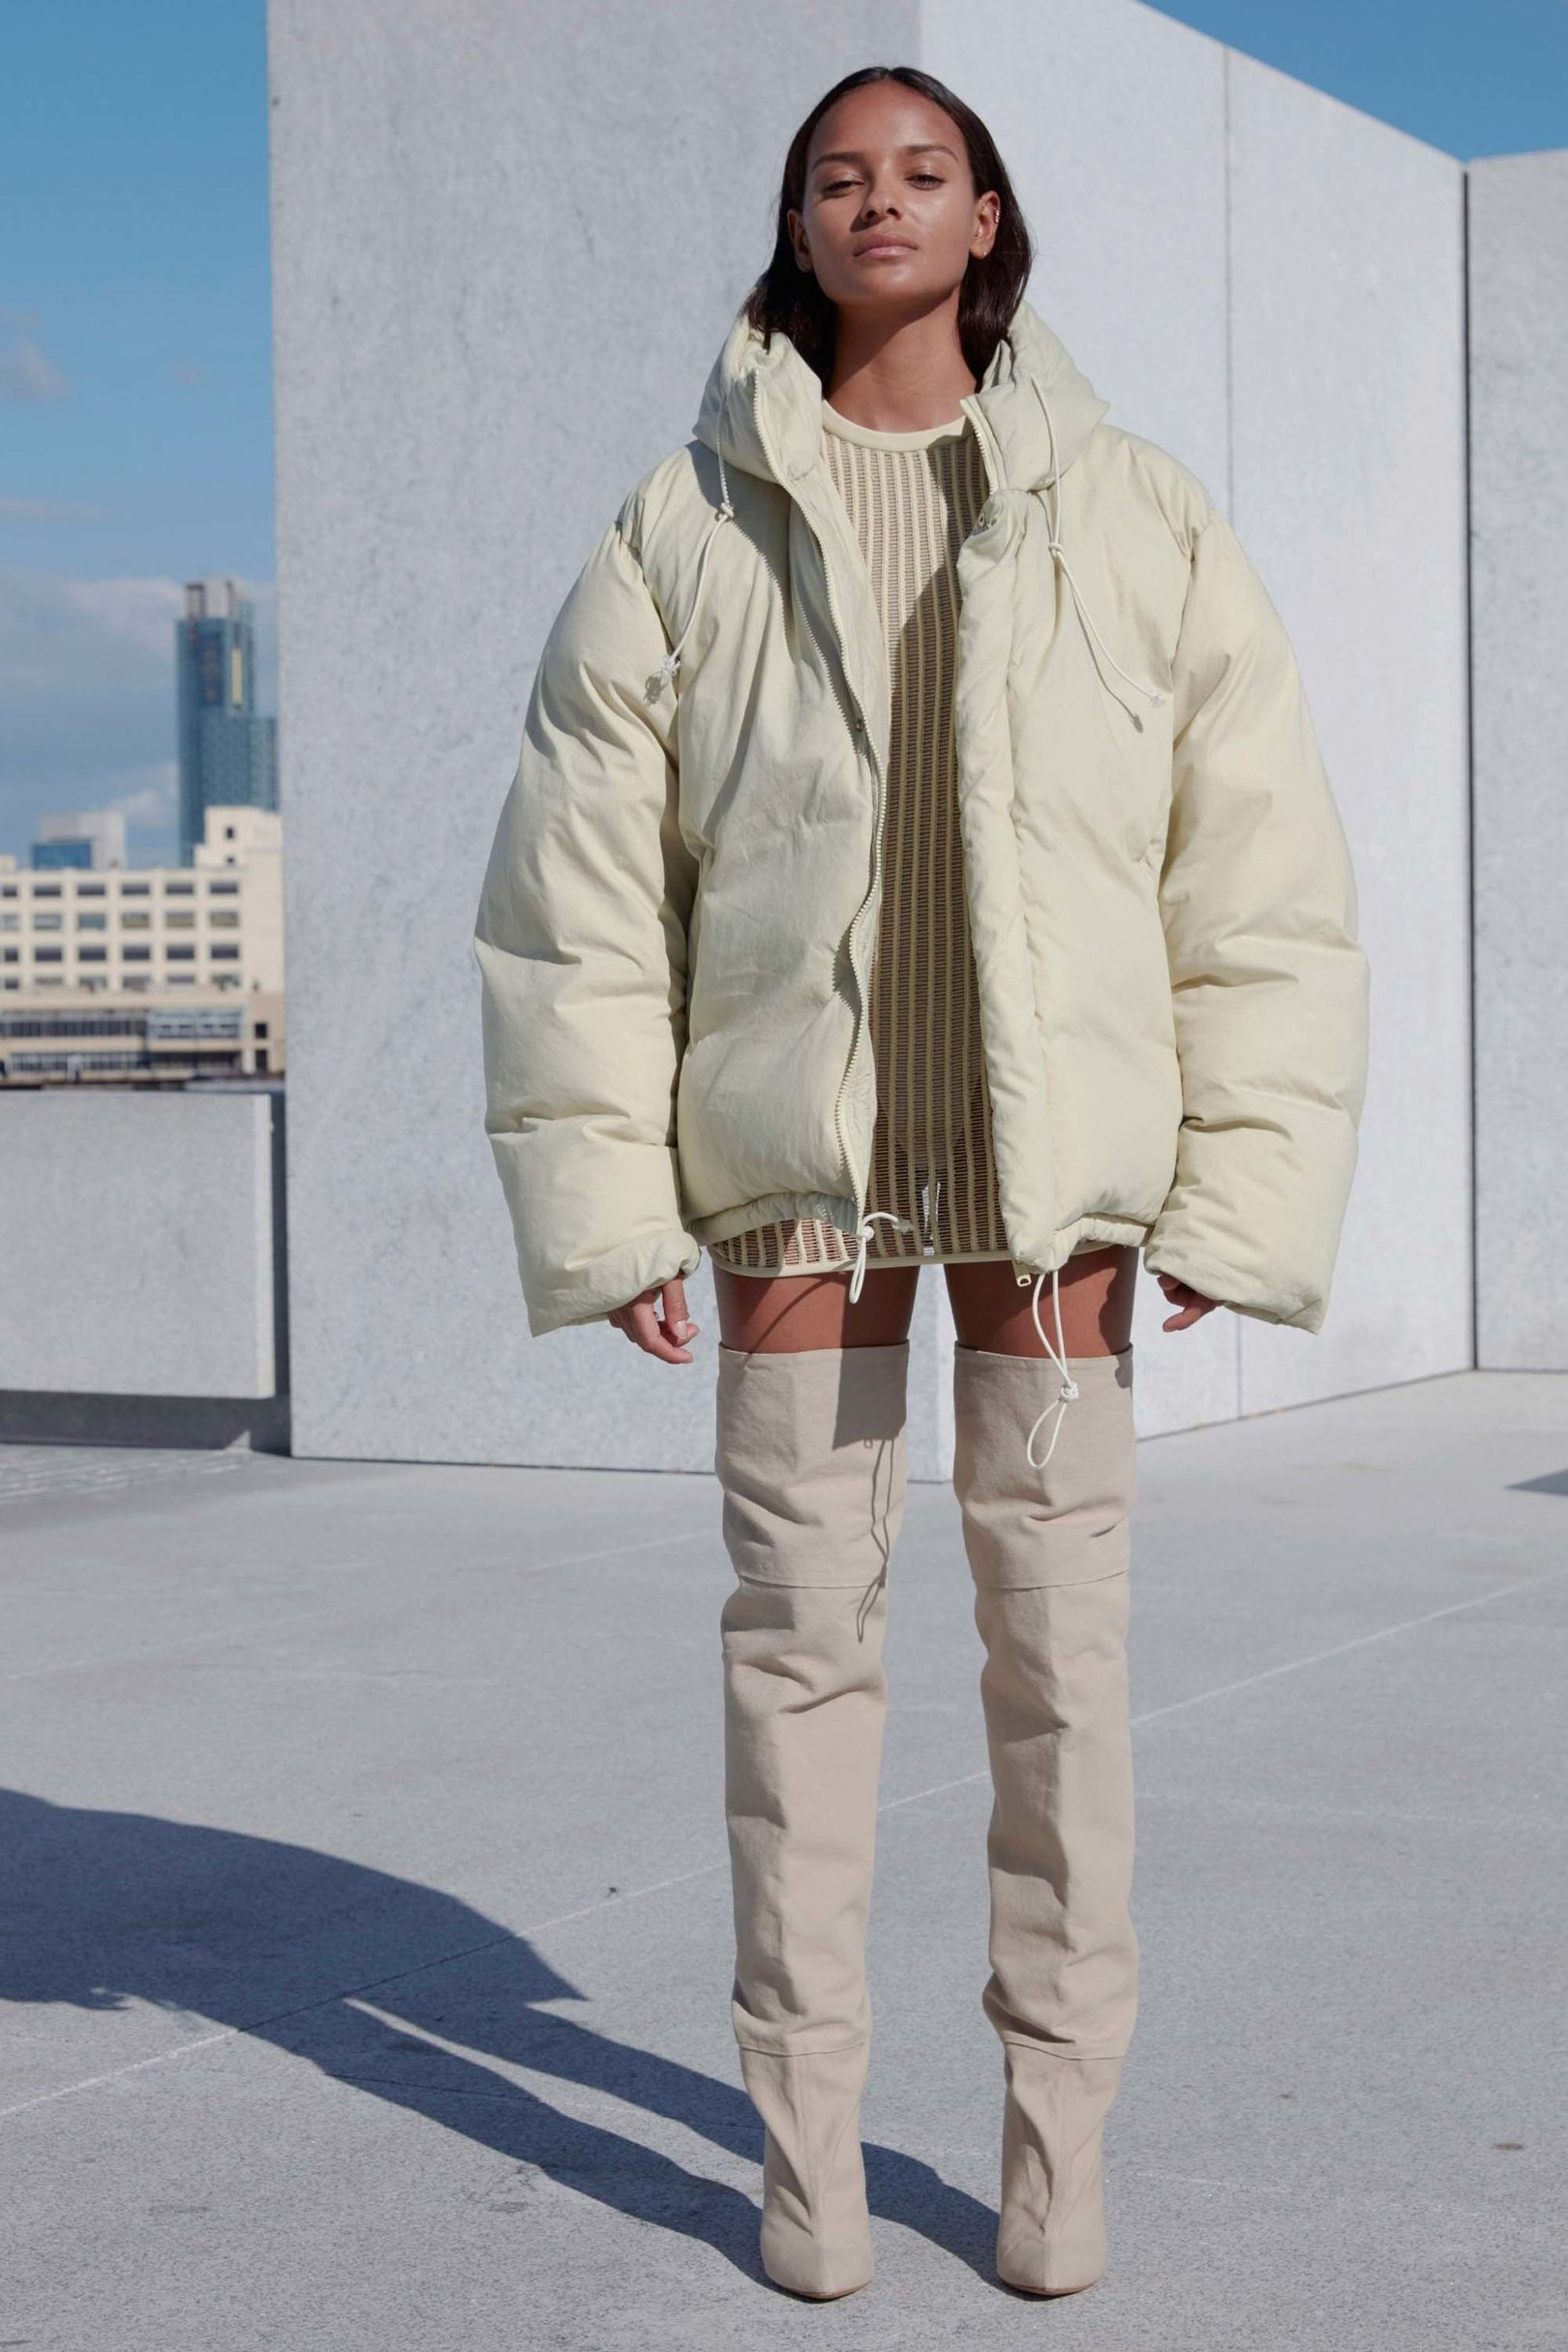 cb6bc781289bf Yeezy Spring Summer 2017 Ready-To-Wear Collection